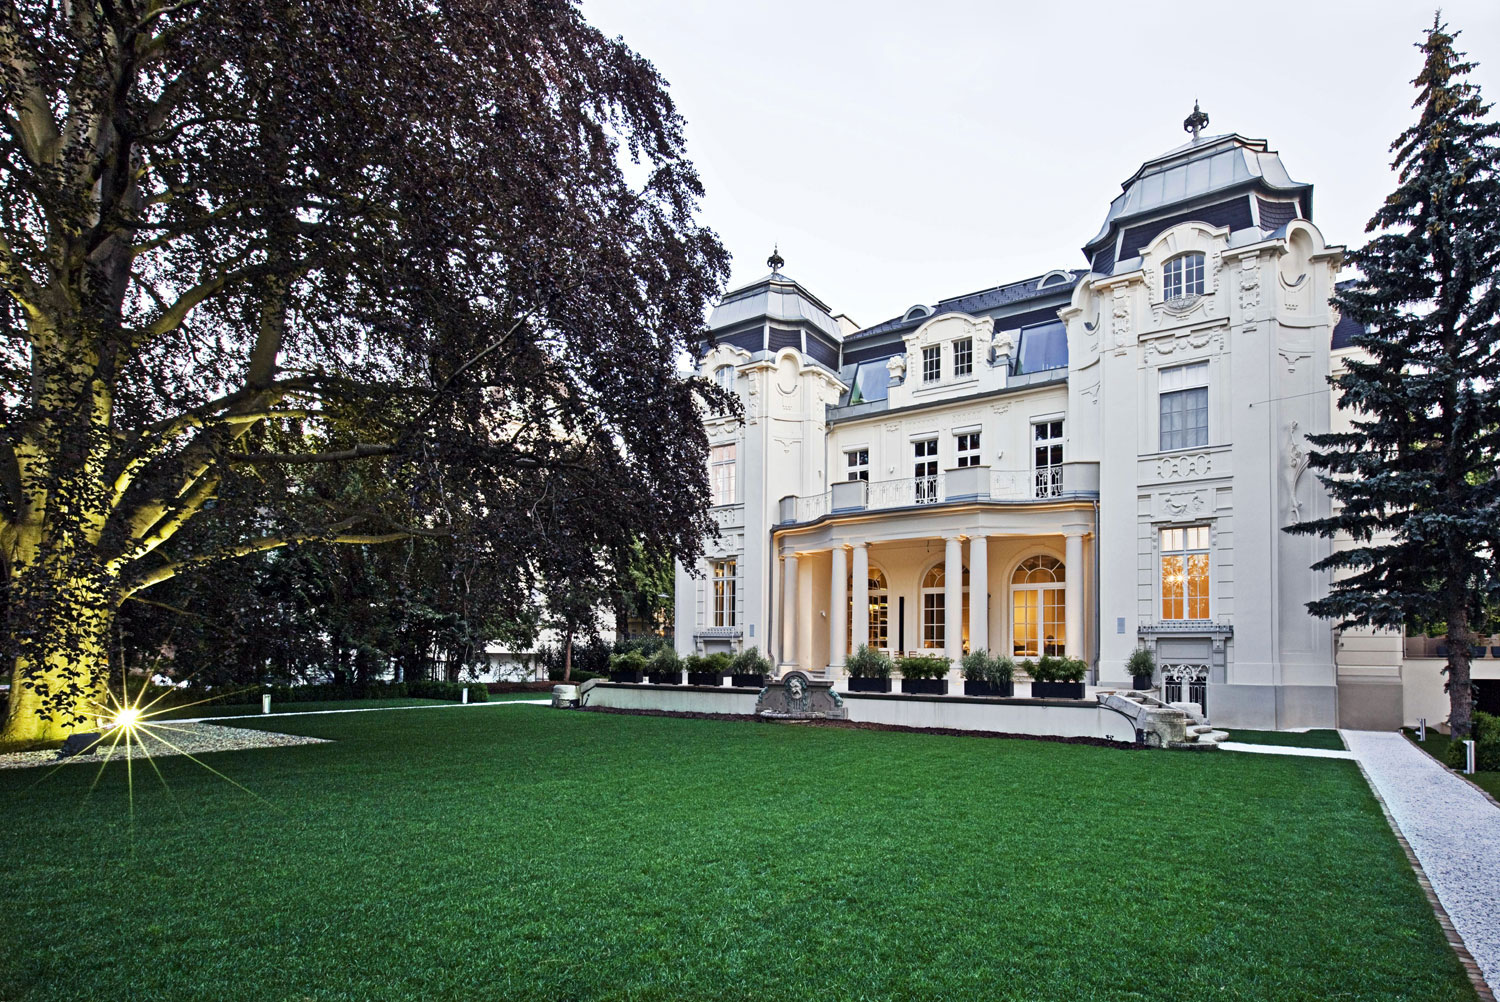 This historic villa is the palatial setting from which to enjoy Vienna's world-famous Christmas and New Year celebrations.